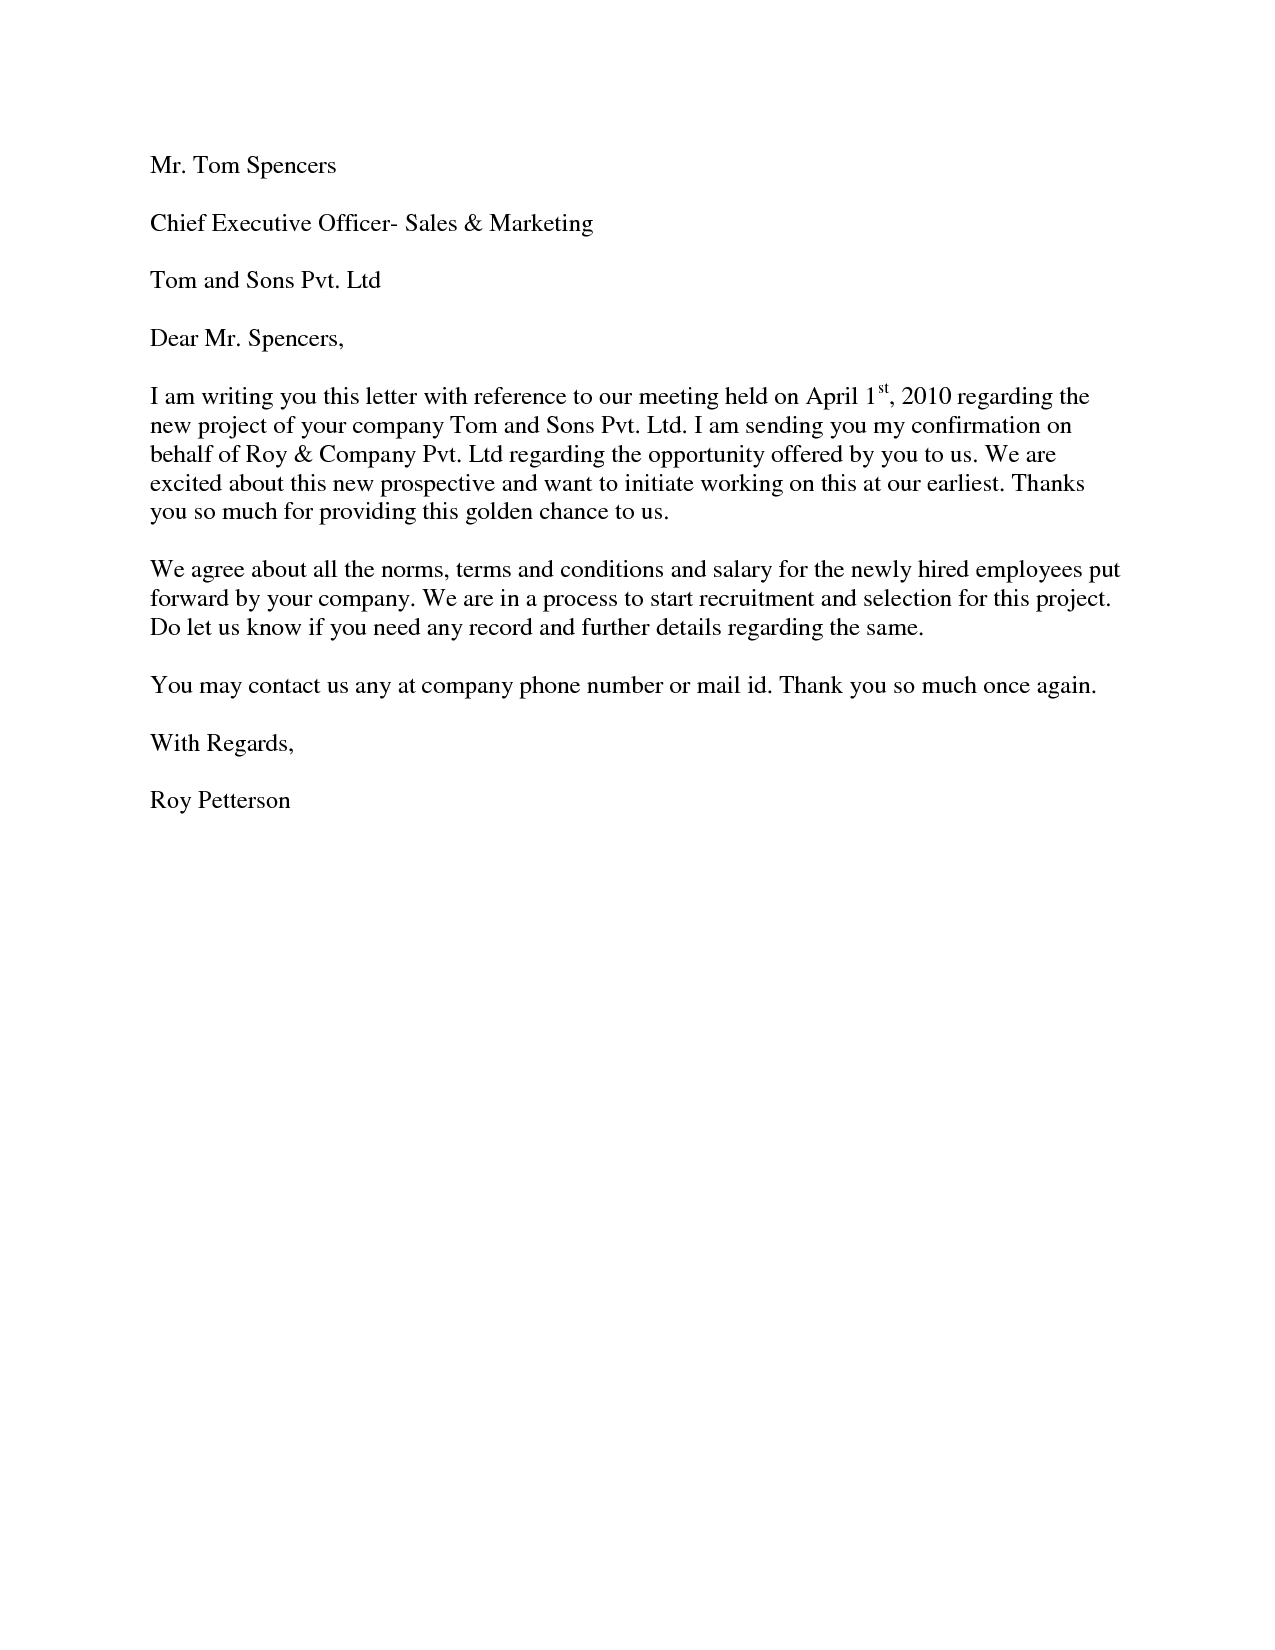 Business Proposal Acceptance Letter Template - Project Acceptance Letter Use This Section to Prepare the Letter